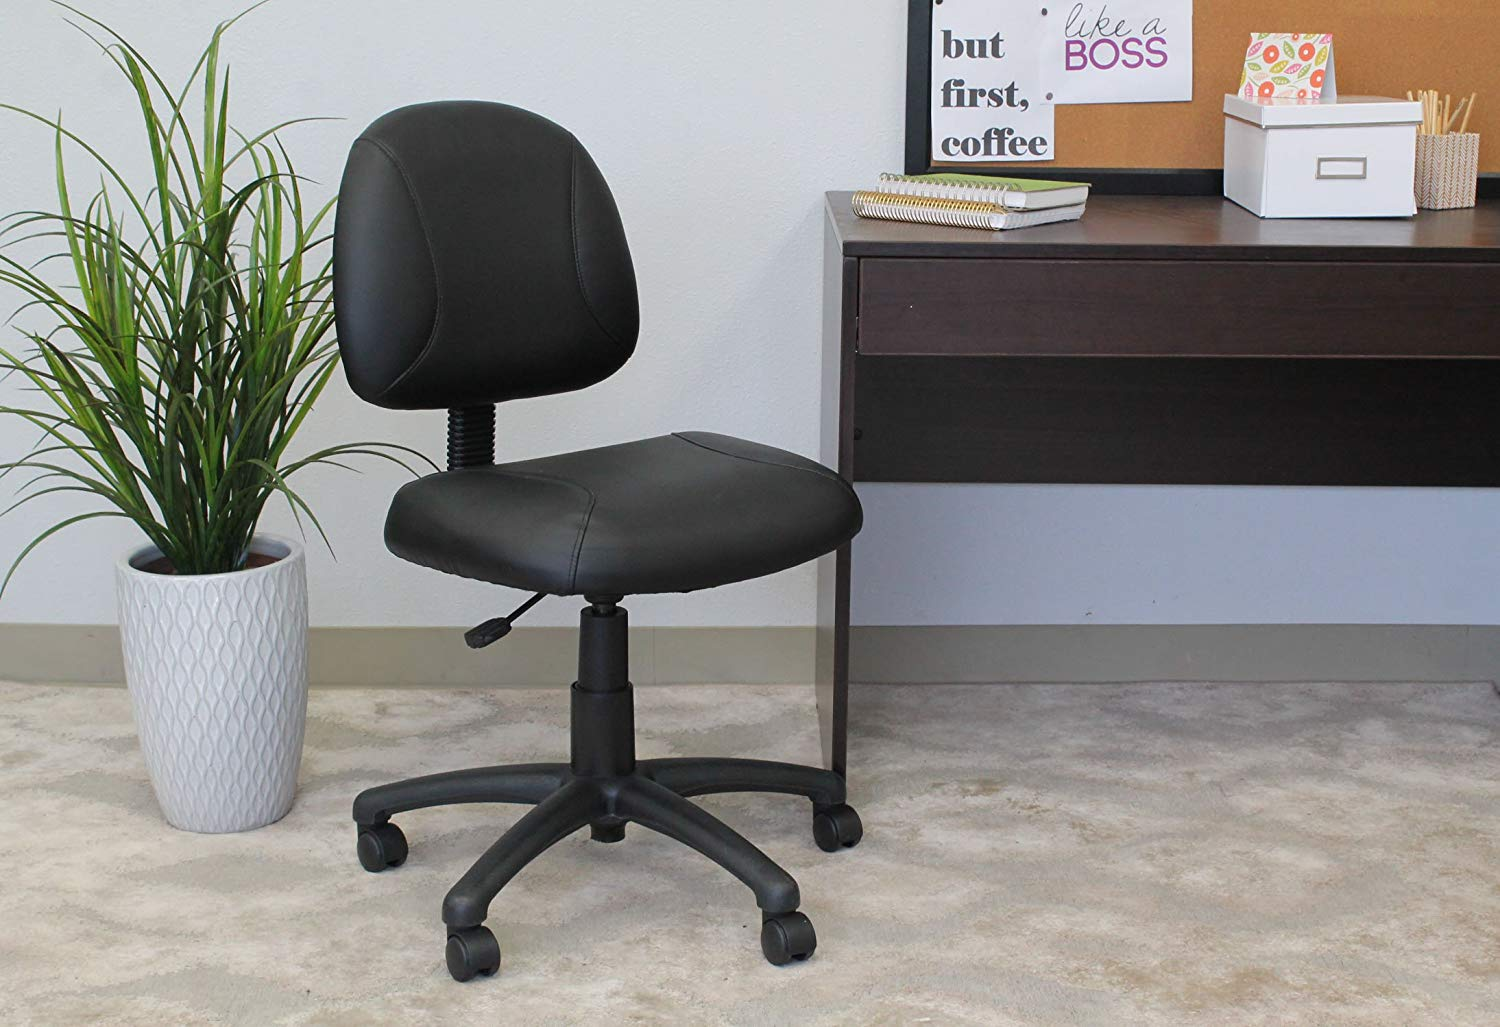 Black Posture Chair, Beautifully Upholstered in Leather, Thick Padded Seat and Back with Built-in Lumbar Support, Pneumatic Seat Height Adjustment, Waterfall Seat Reduces Stress to your Legs